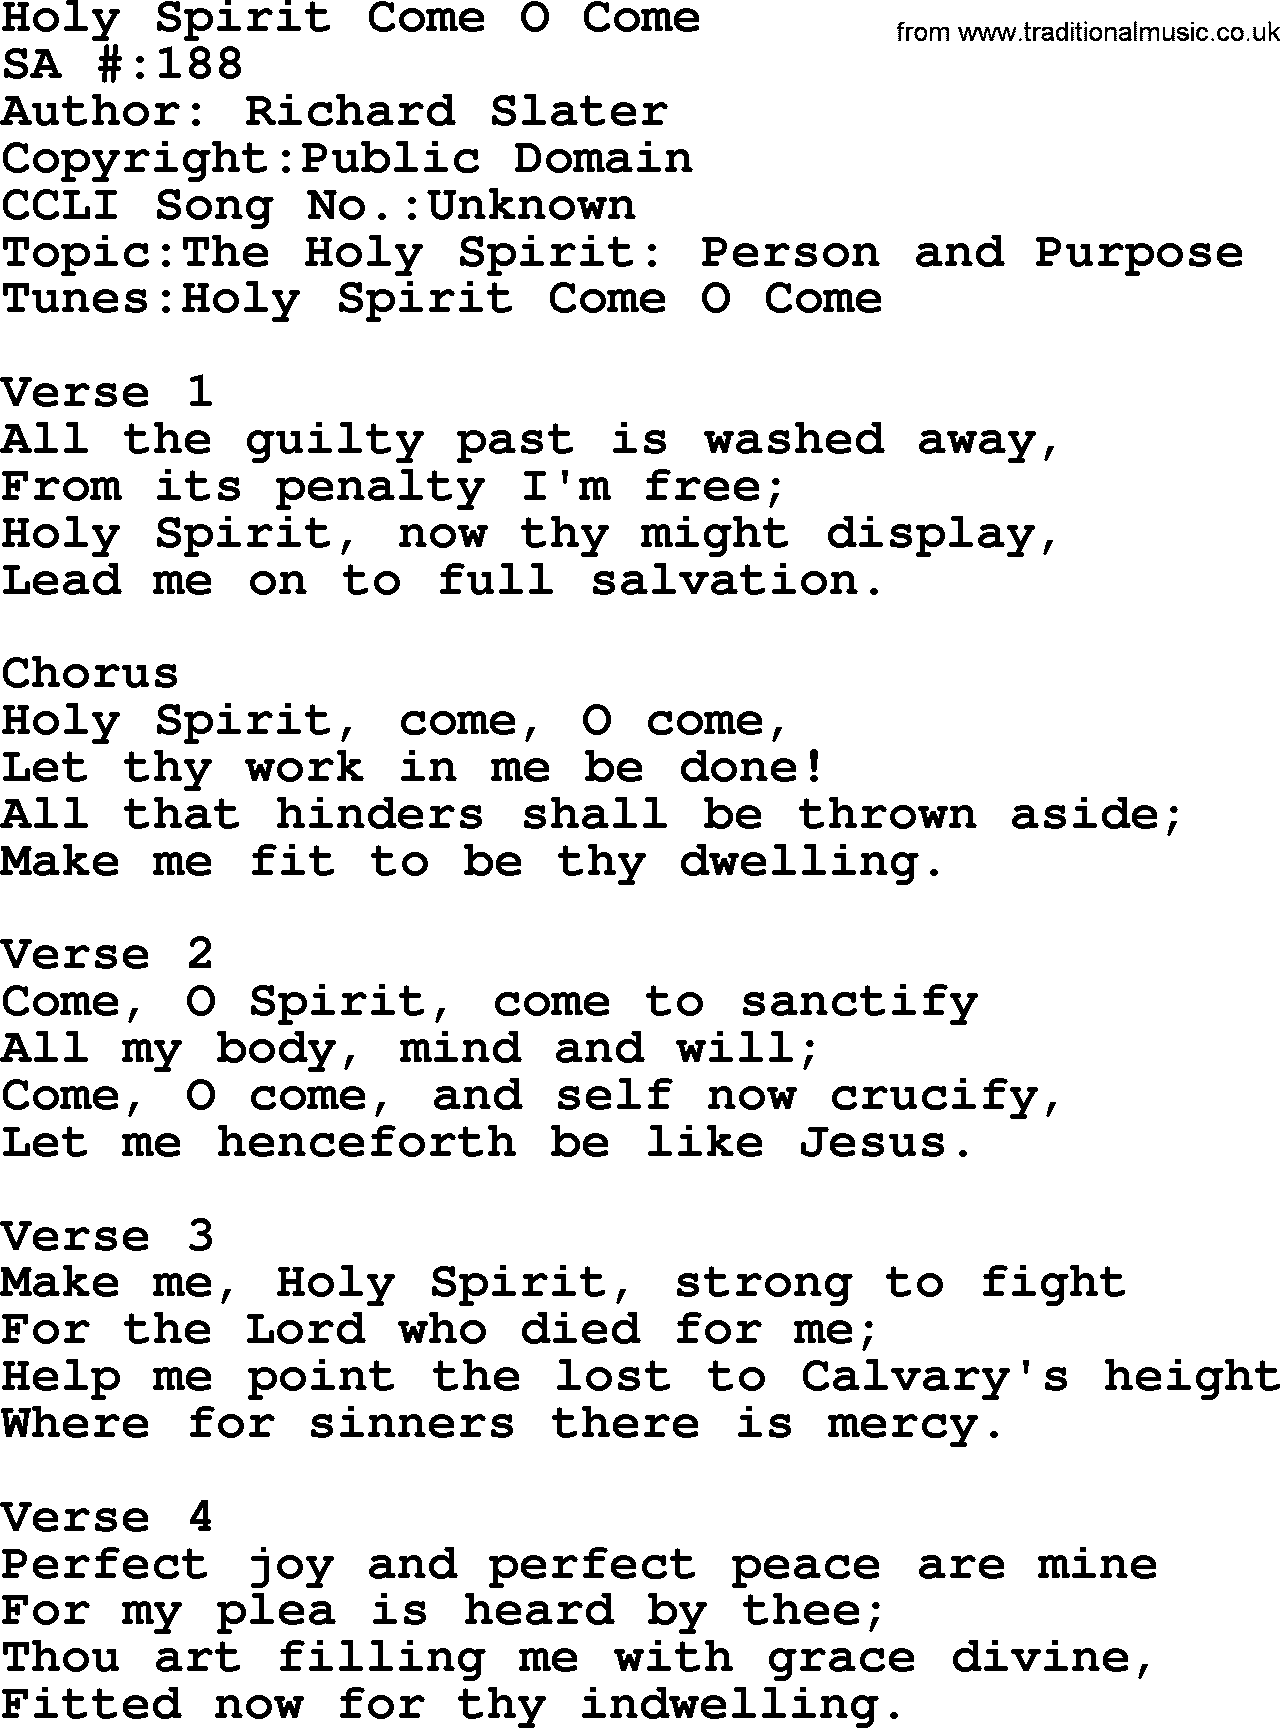 Come Holy Ghost Creator Blest-Score - YouTube